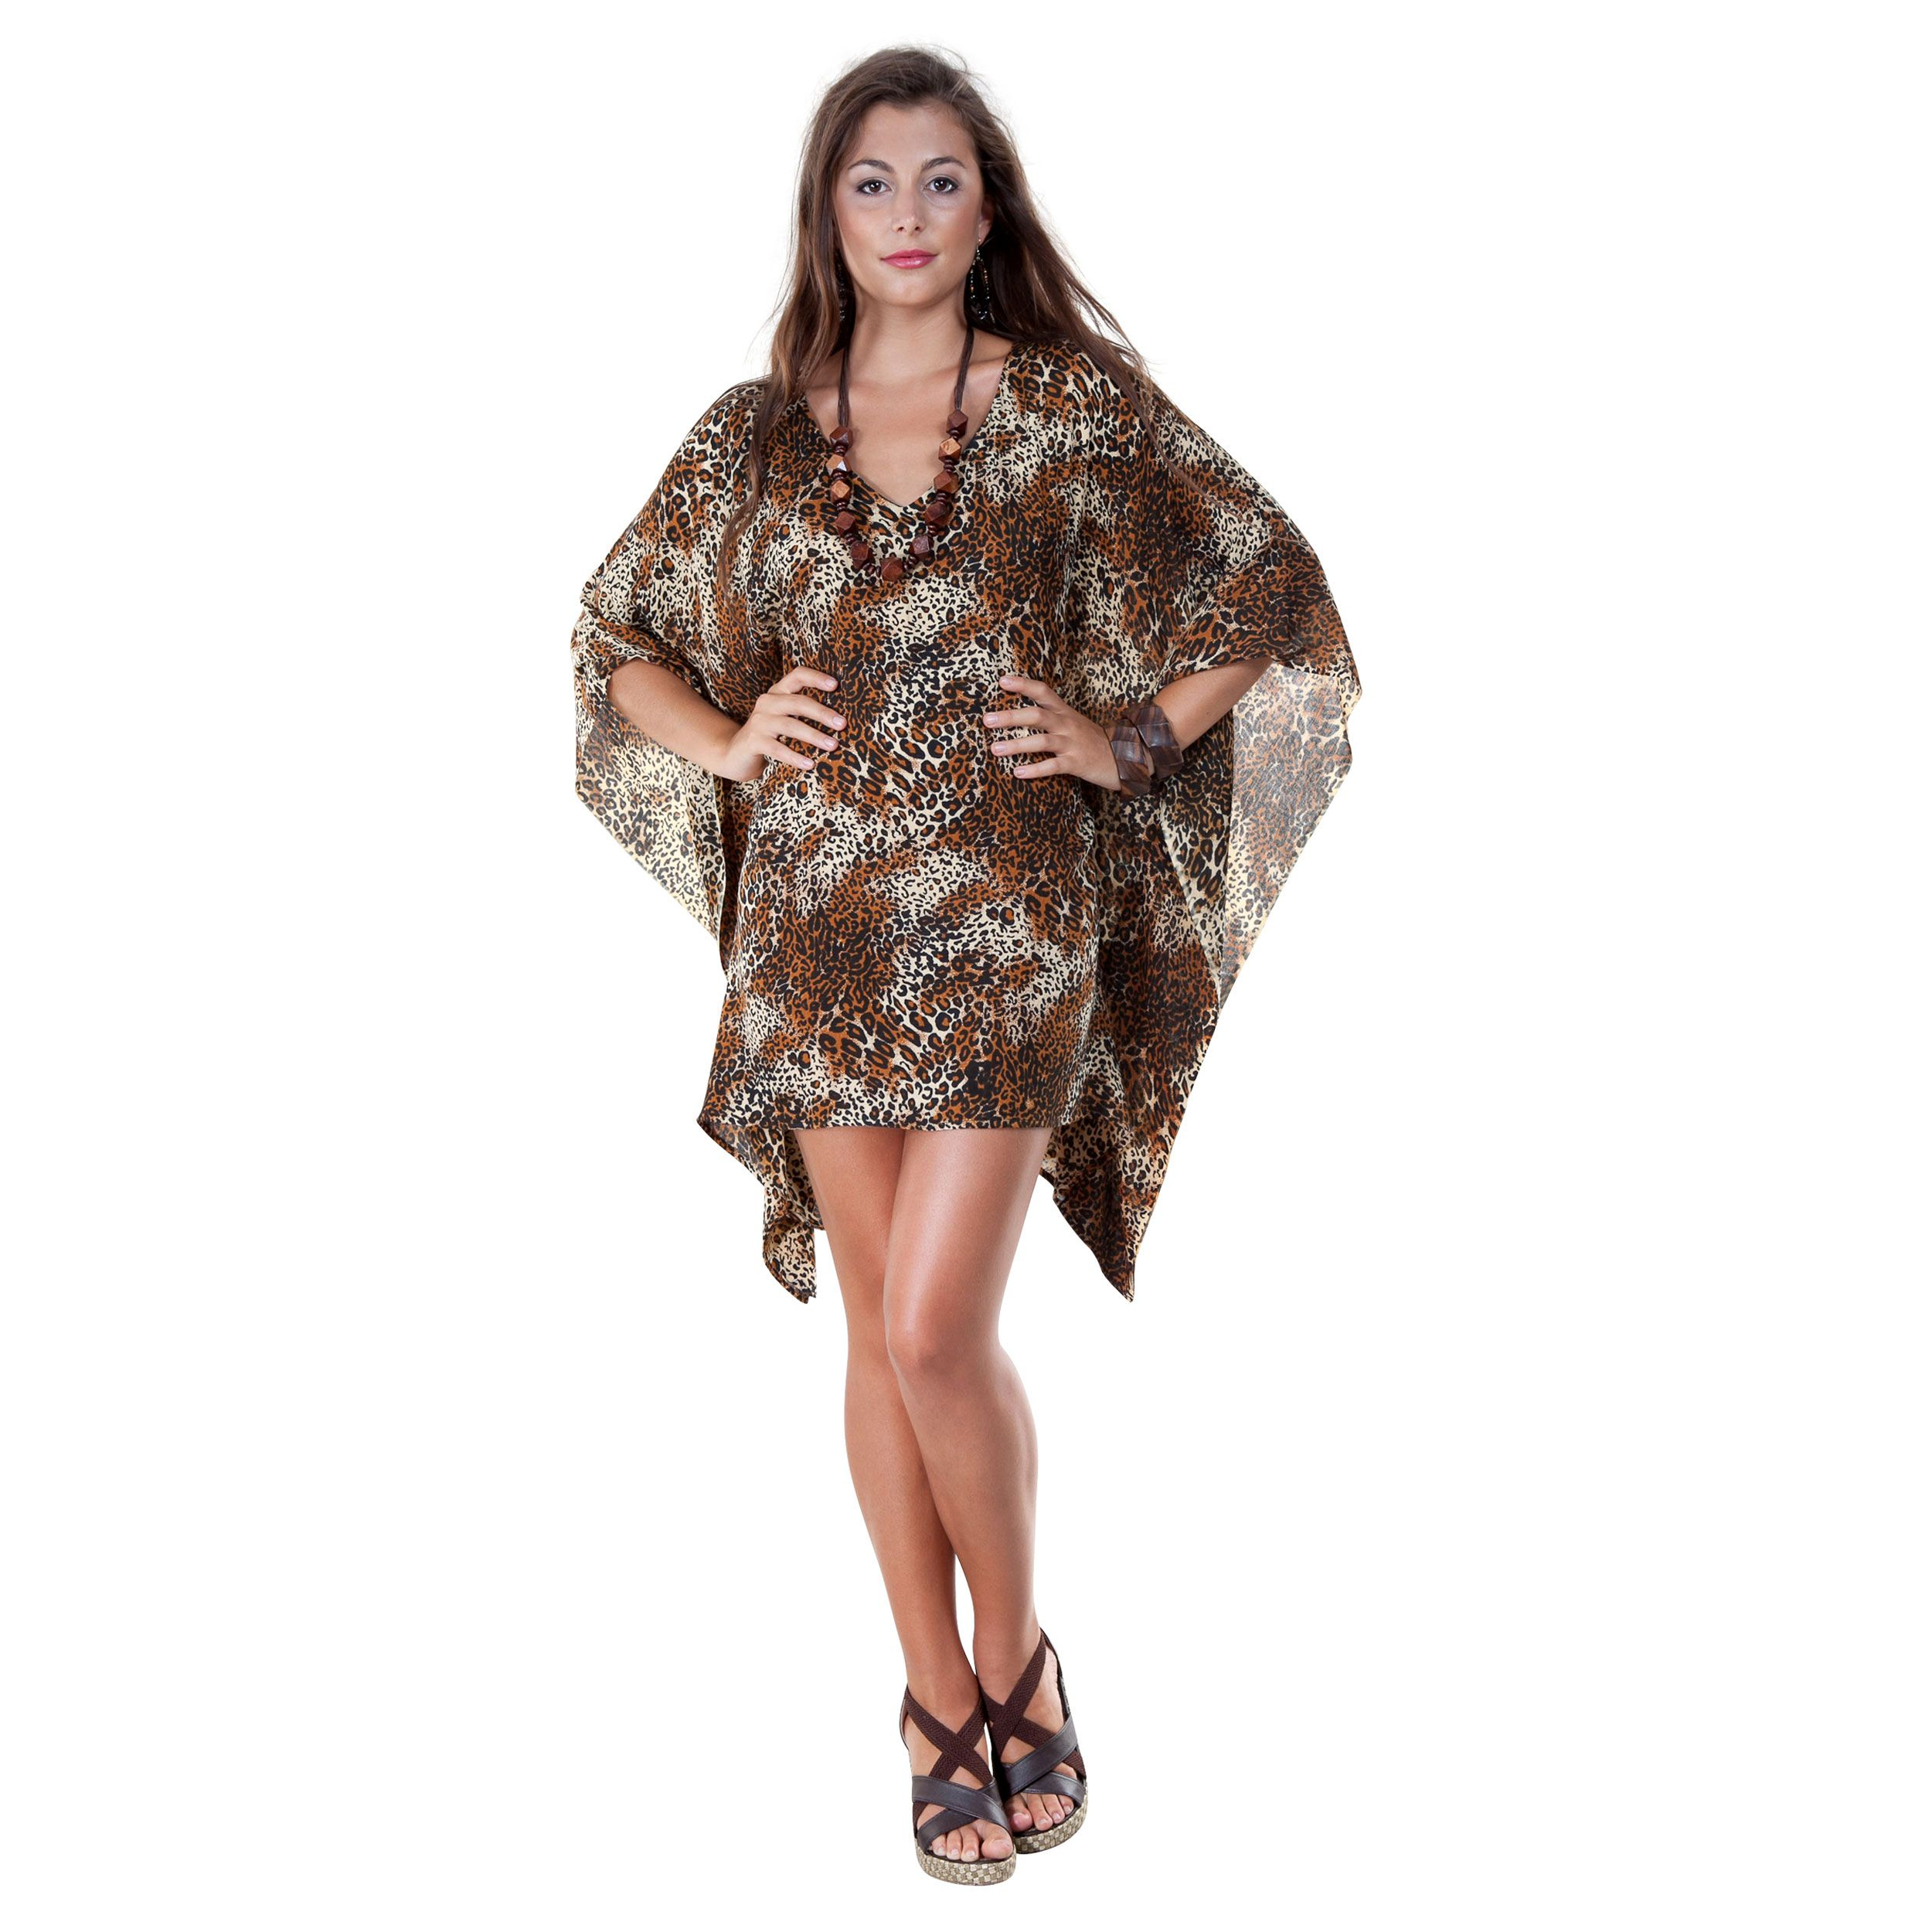 This Animal Print Poncho slides easily over your head with the open V-neck. This poncho can also be worn as a sexy beach cover-up or flirty top with jeans or leggings.